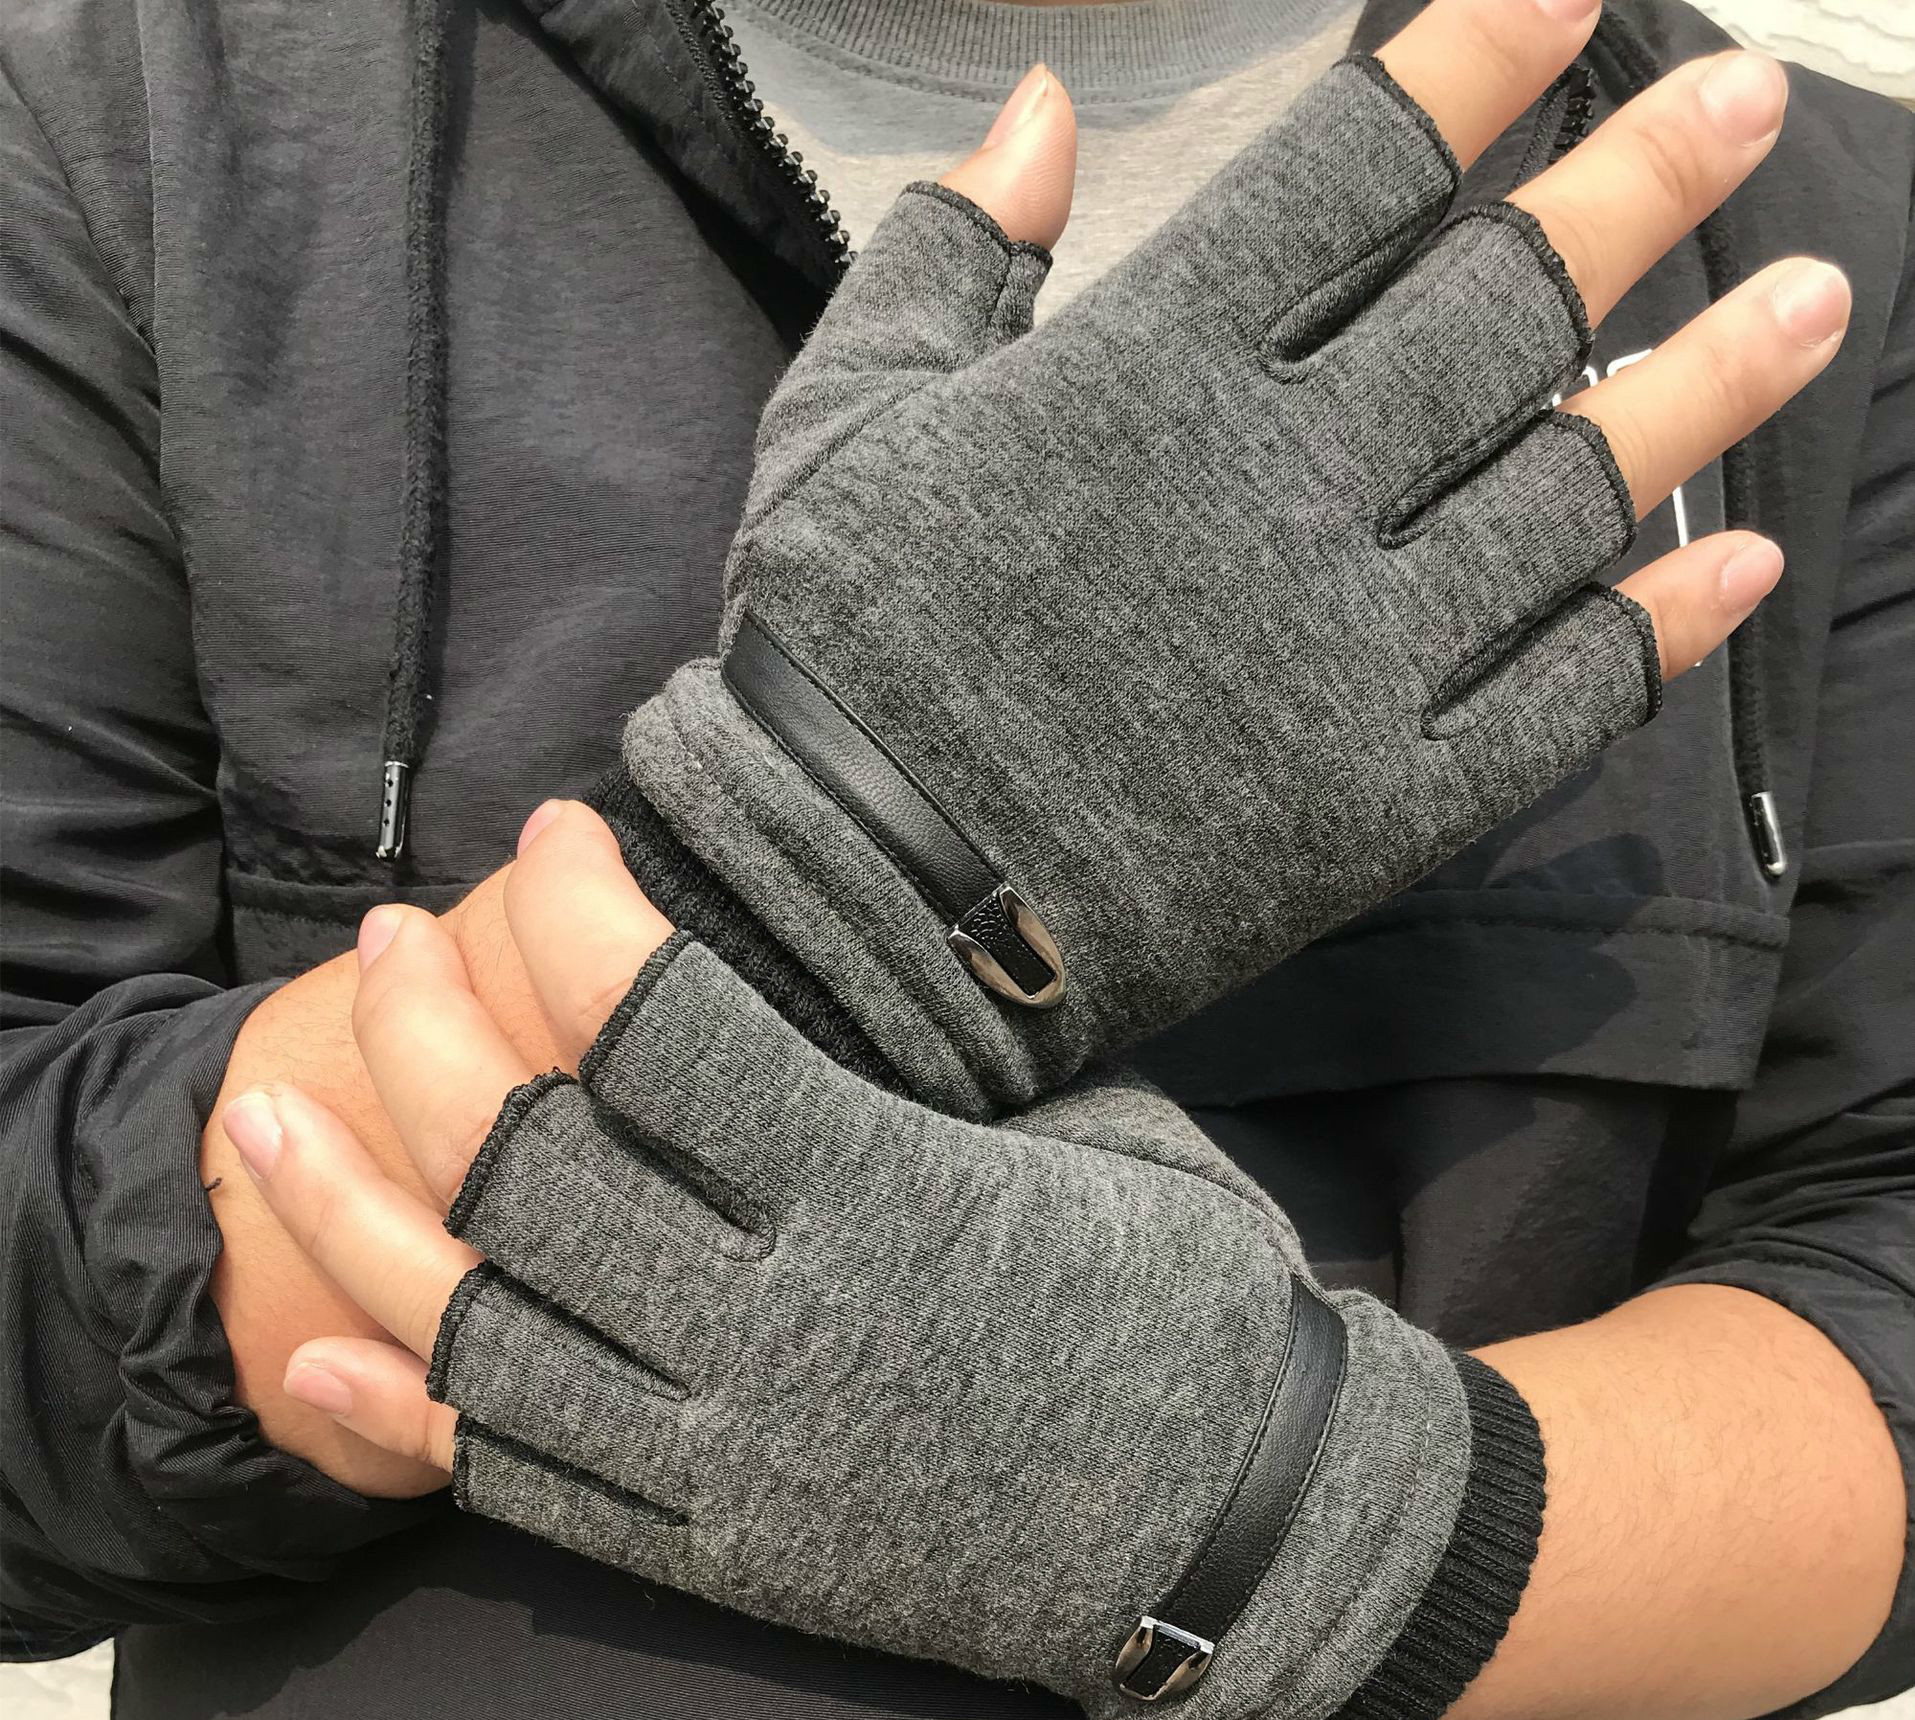 1 Pair New Fashion Unisex Men Women Warm Magic Knitted Stretch Elastic Mitten Half Finger Fingerless Gloves Prepare For Winter